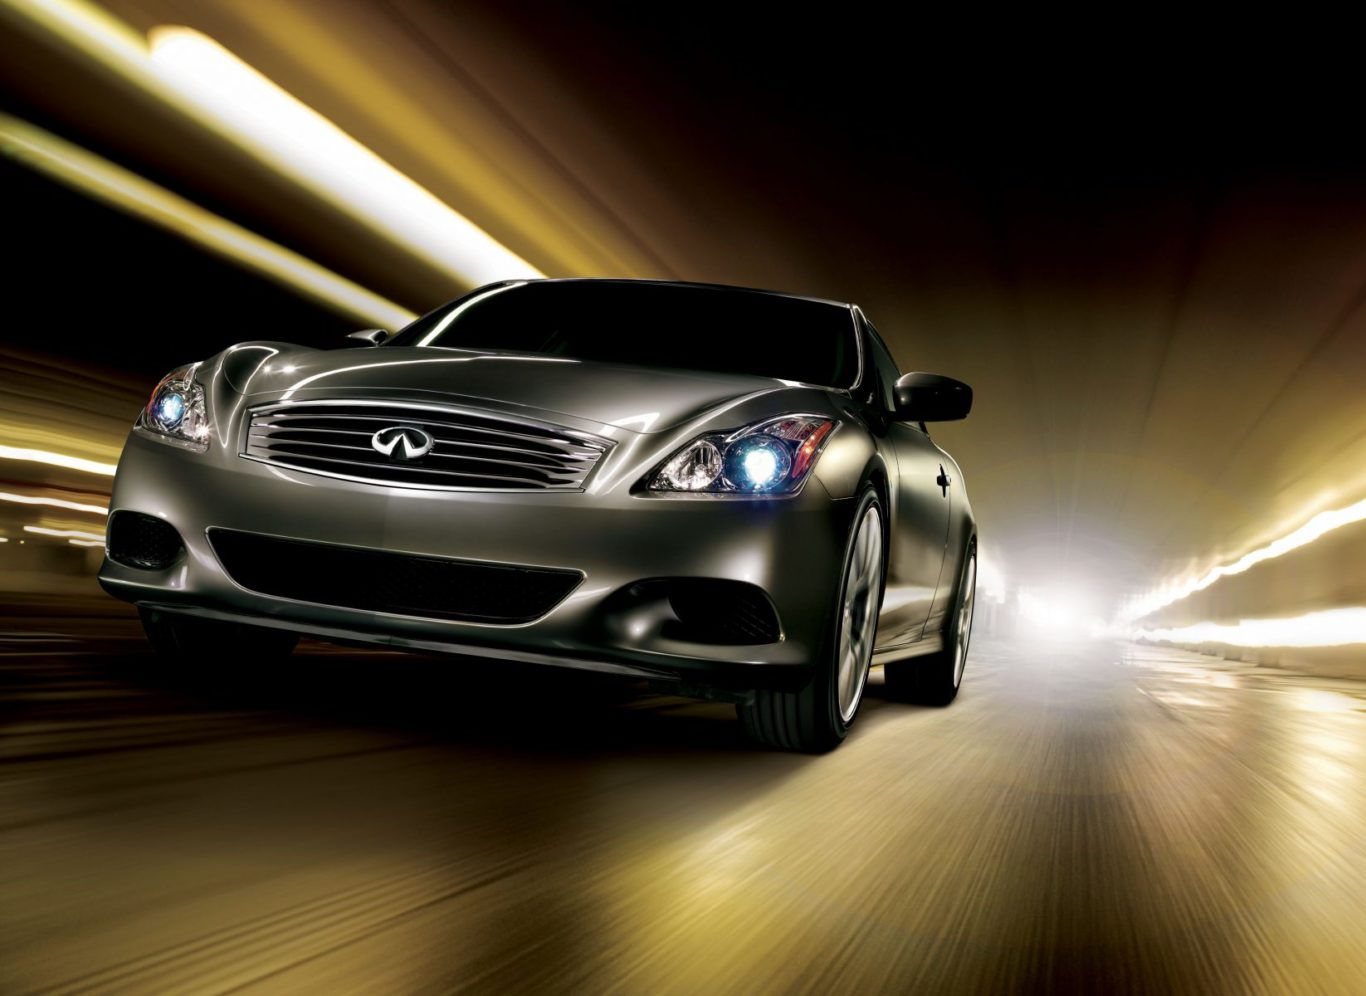 The G37 was Infiniti's rival to the BMW M3